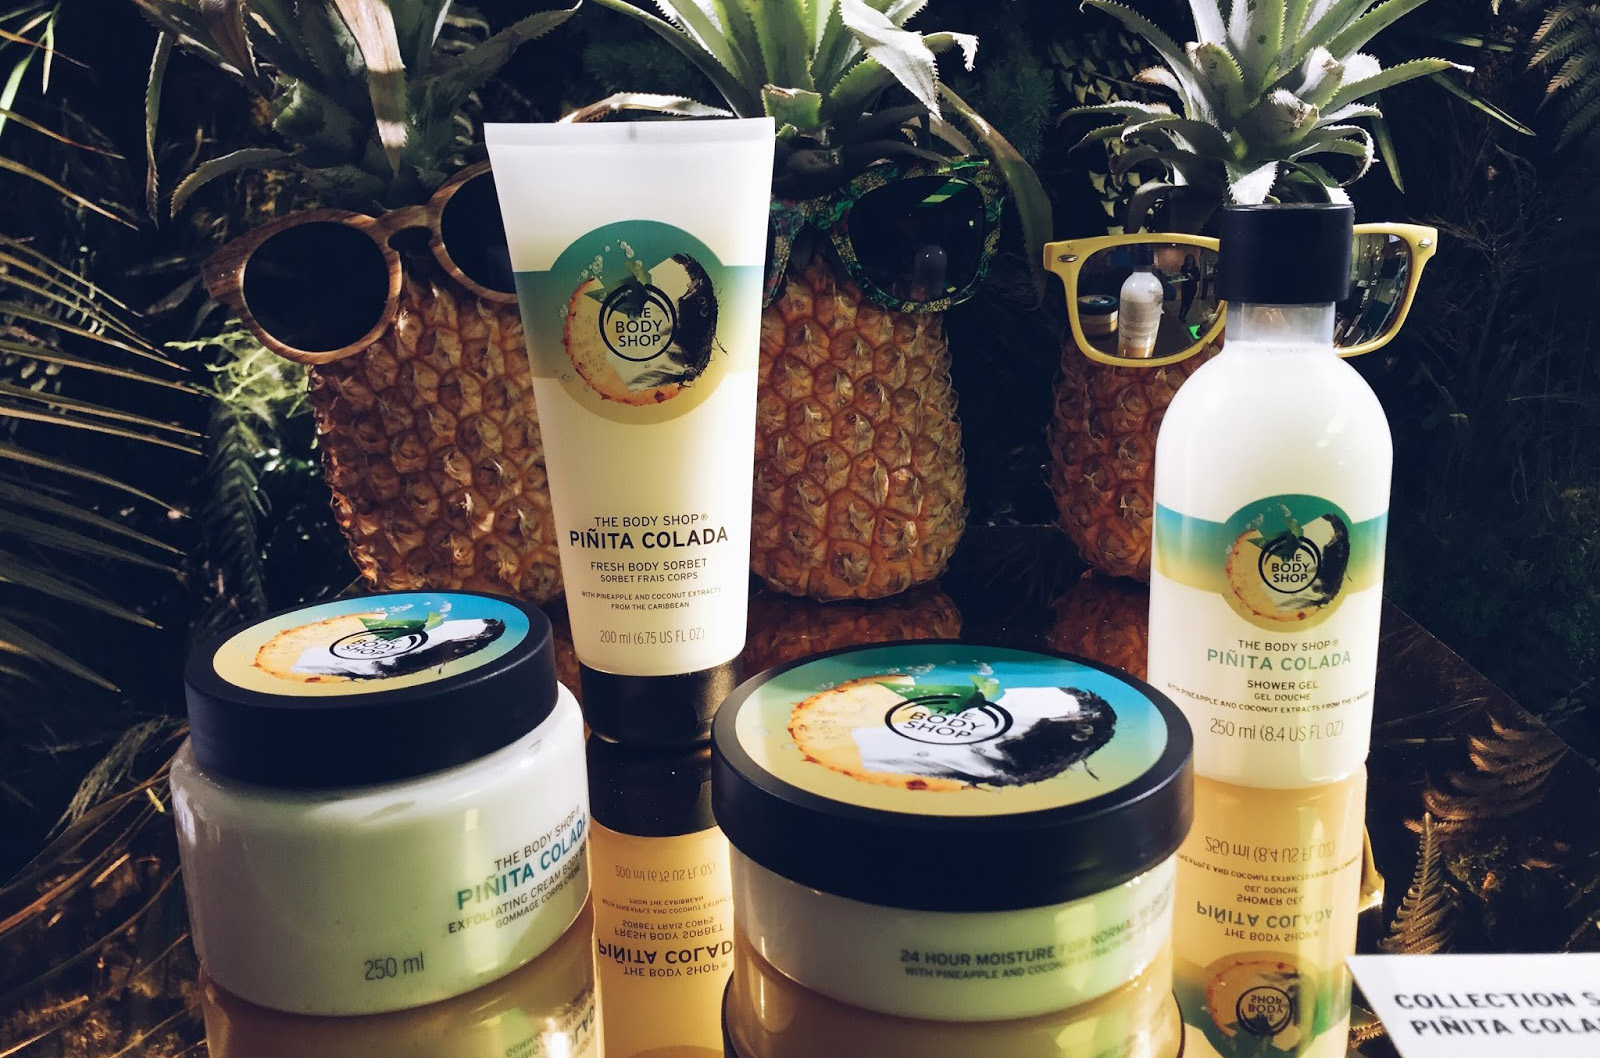 the body shop pinita colada collection été 2016